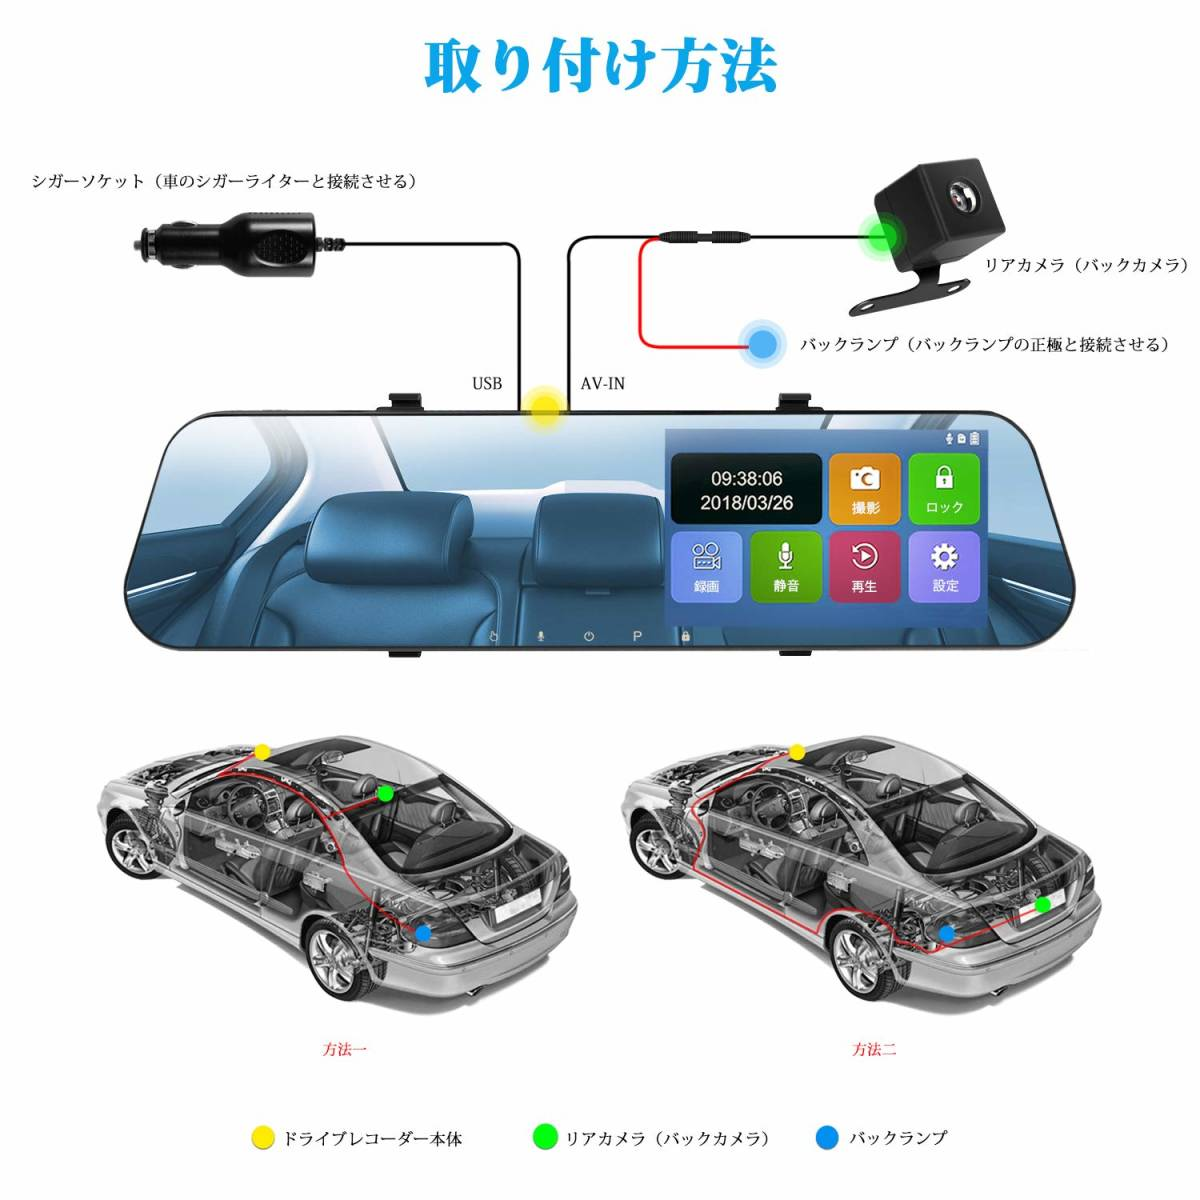 * new goods * unused * drive recorder rearview mirror rom and rear (before and after) camera 4.3 inch touch panel 1080P full HD high resolution animation 300 ten thousand pixels back navi equipped